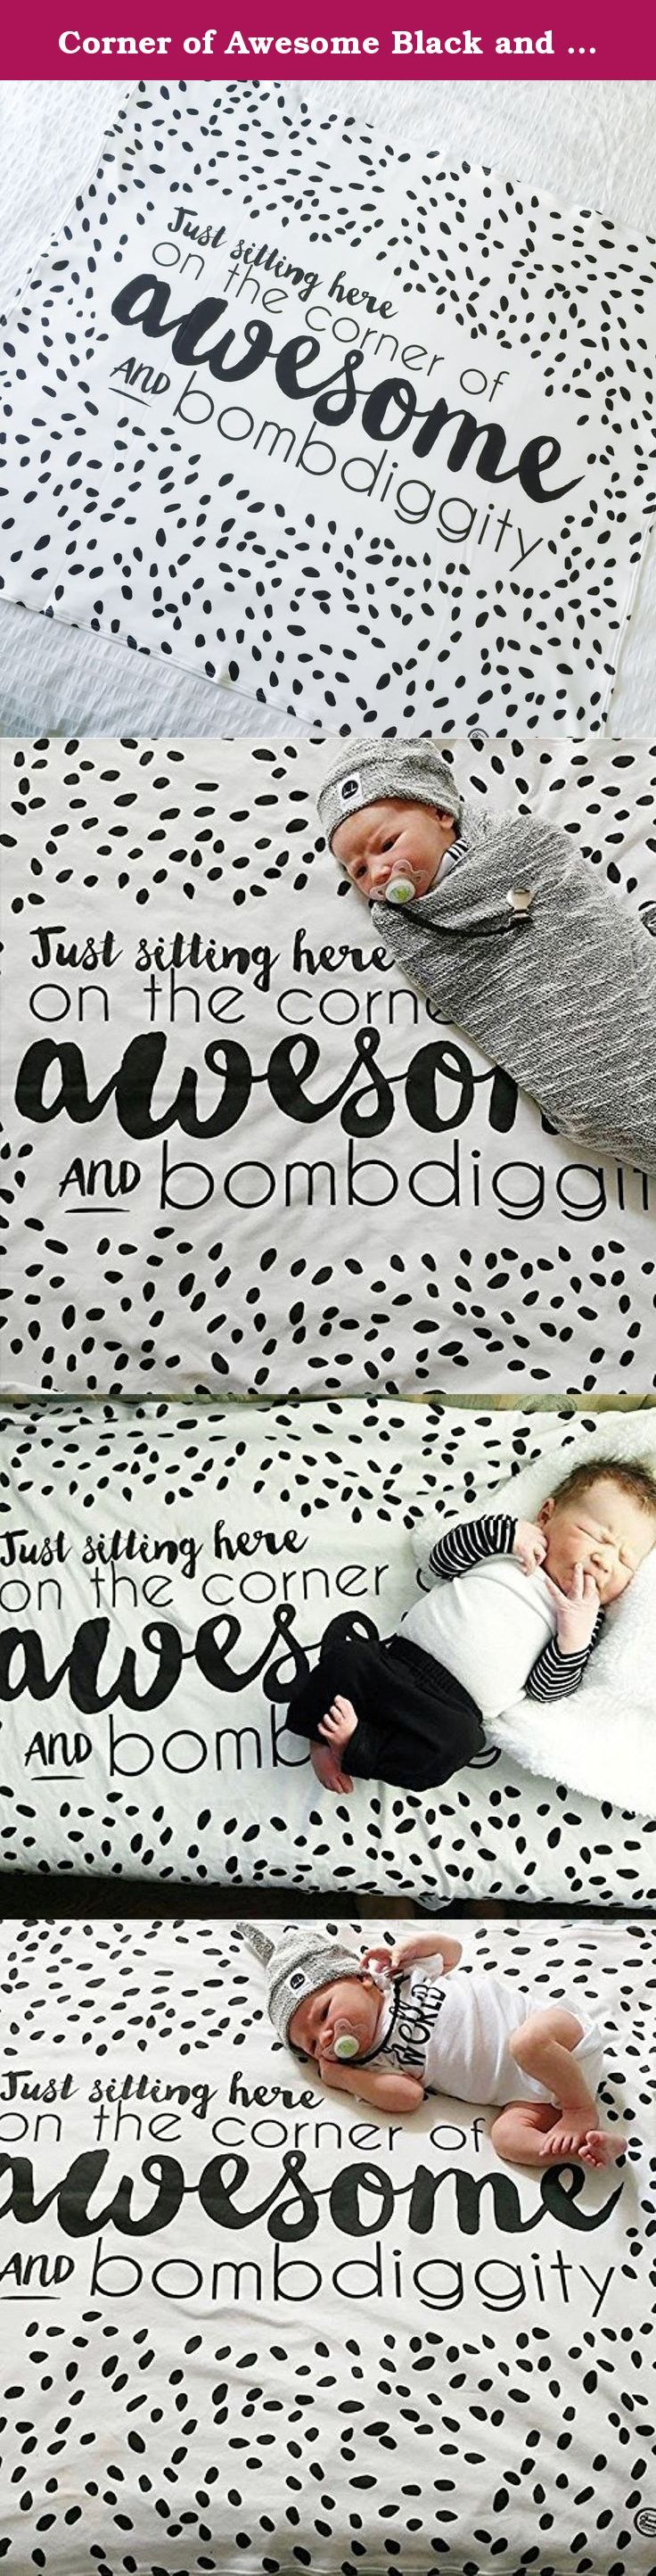 Corner of Awesome Black and White Baby Blanket and Swaddle. Blanket measures 35″ x 38″ and are the perfect size for swaddling, strollers, car seats and snuggling. As with all of our baby blankets our Faith,Trust, & Pixie Dust design is made of ultra-soft, breathable, lightweight yet warm, 100% organic cotton jersey. Our blankets are ideal for both babies and toddlers as they easily transition from a swaddle to an everyday blanket that can be used in the car seat, at the park, or cuddling…